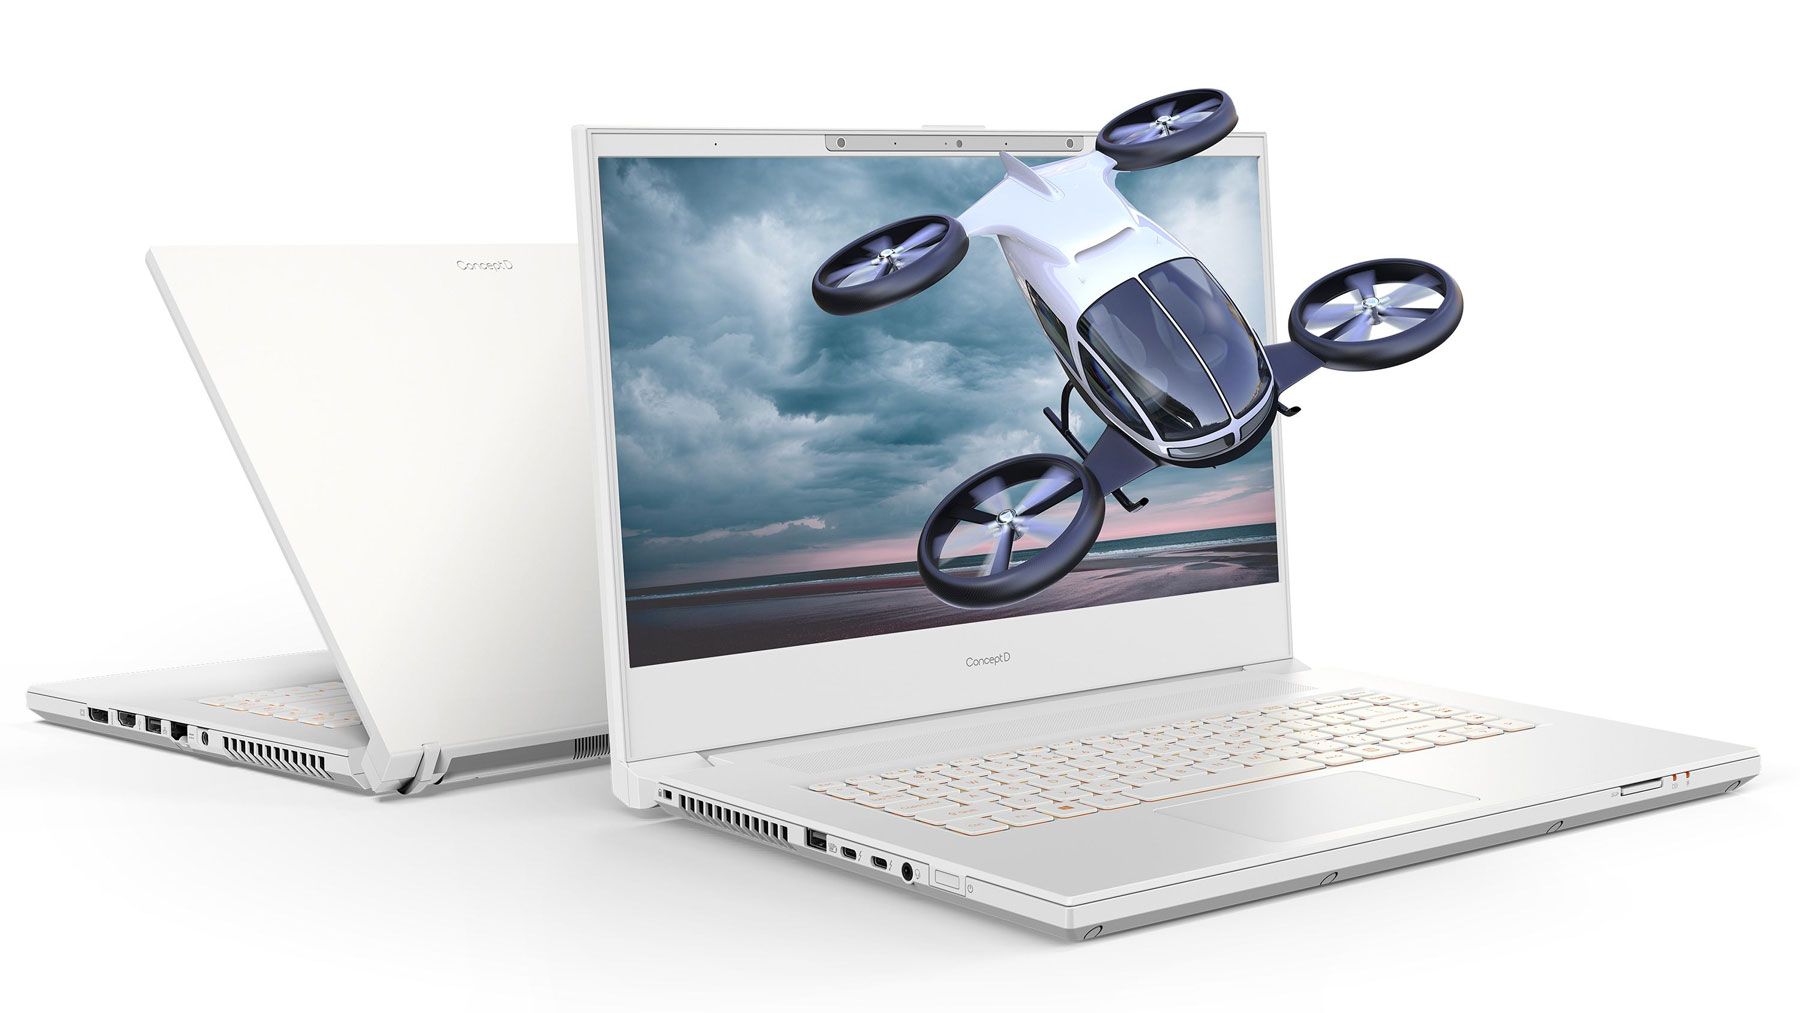 Acer's glasses-free 3D SpatialLabs laptop arrives this winter